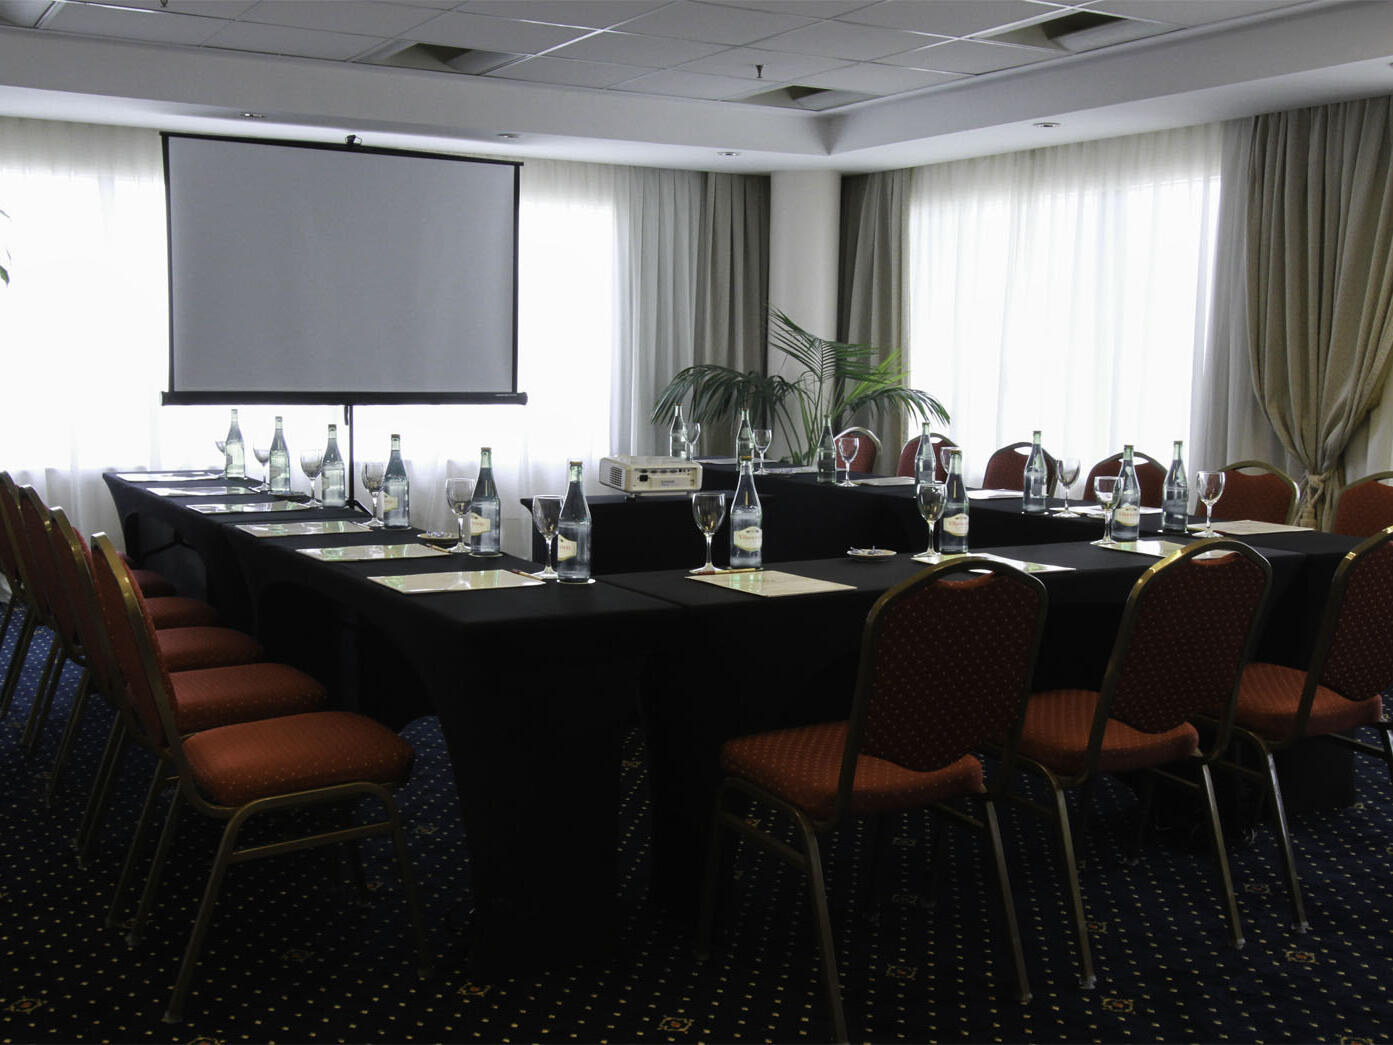 Aranjuez meeting room arranged with tables and red chairs at Hotel Emperador Buenos Aires